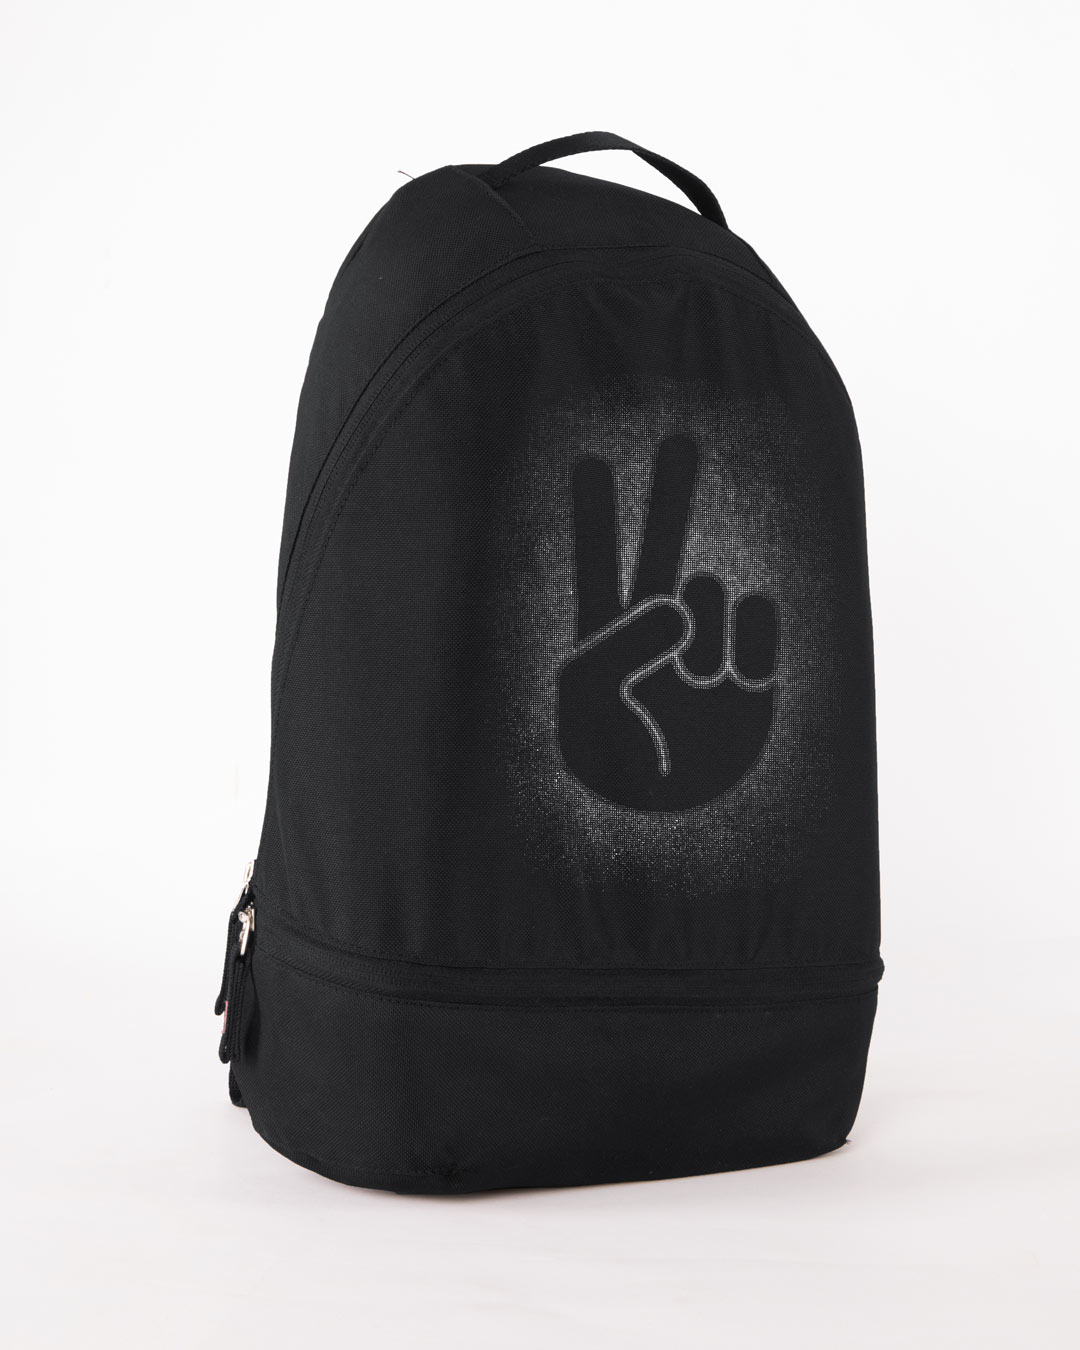 27b80b3a33 Buy Peace Out Shadow Printed Bags Online India   Bewakoof.com